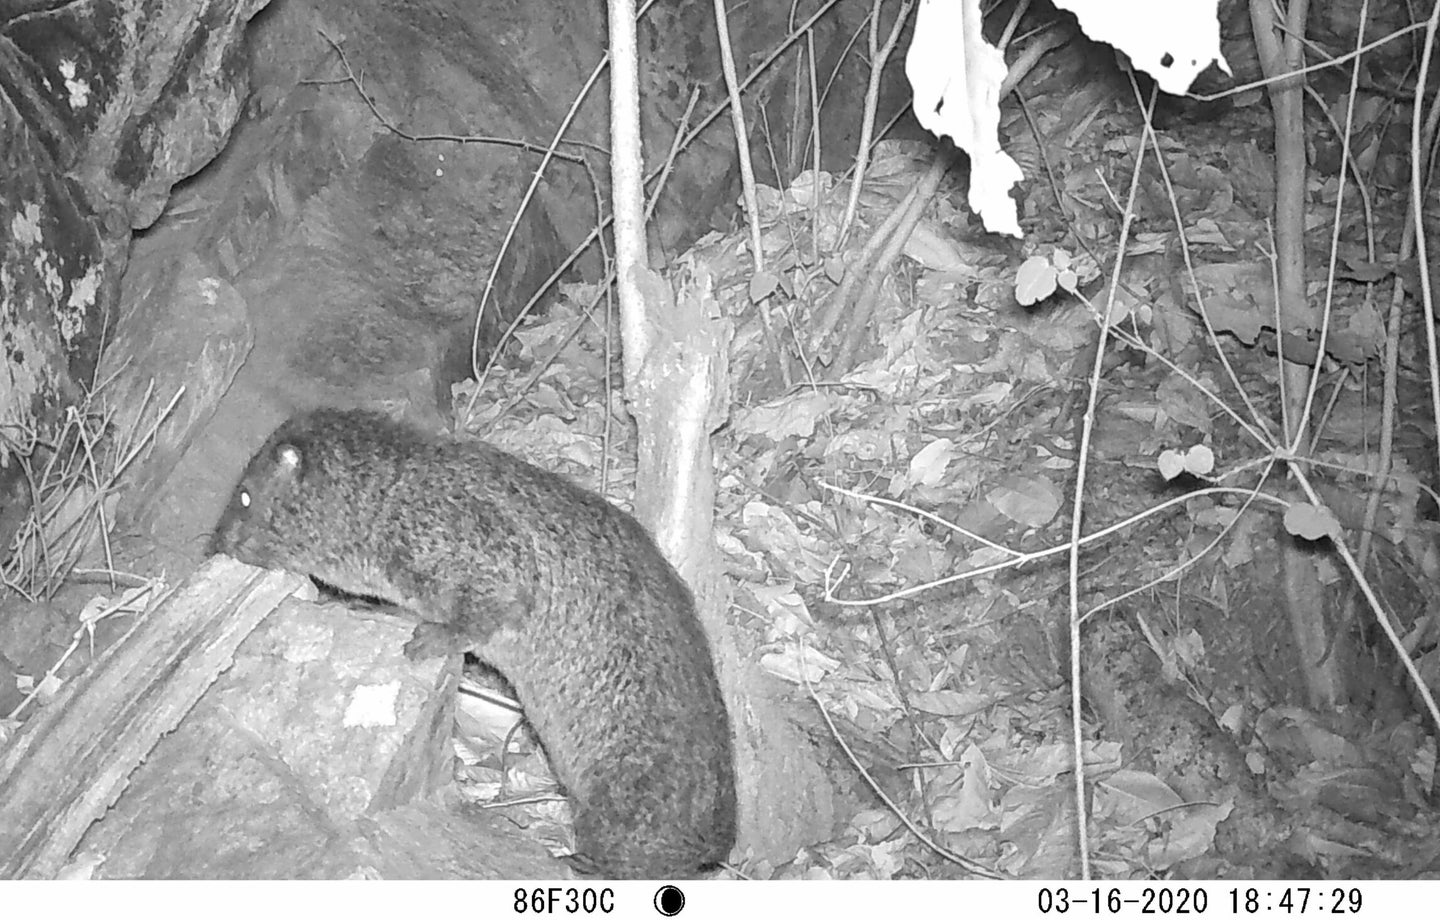 A furry looking, ground-hog like creature climbs onto a rock from the forest floor surrounded by leaf litter and tree saplings at night.